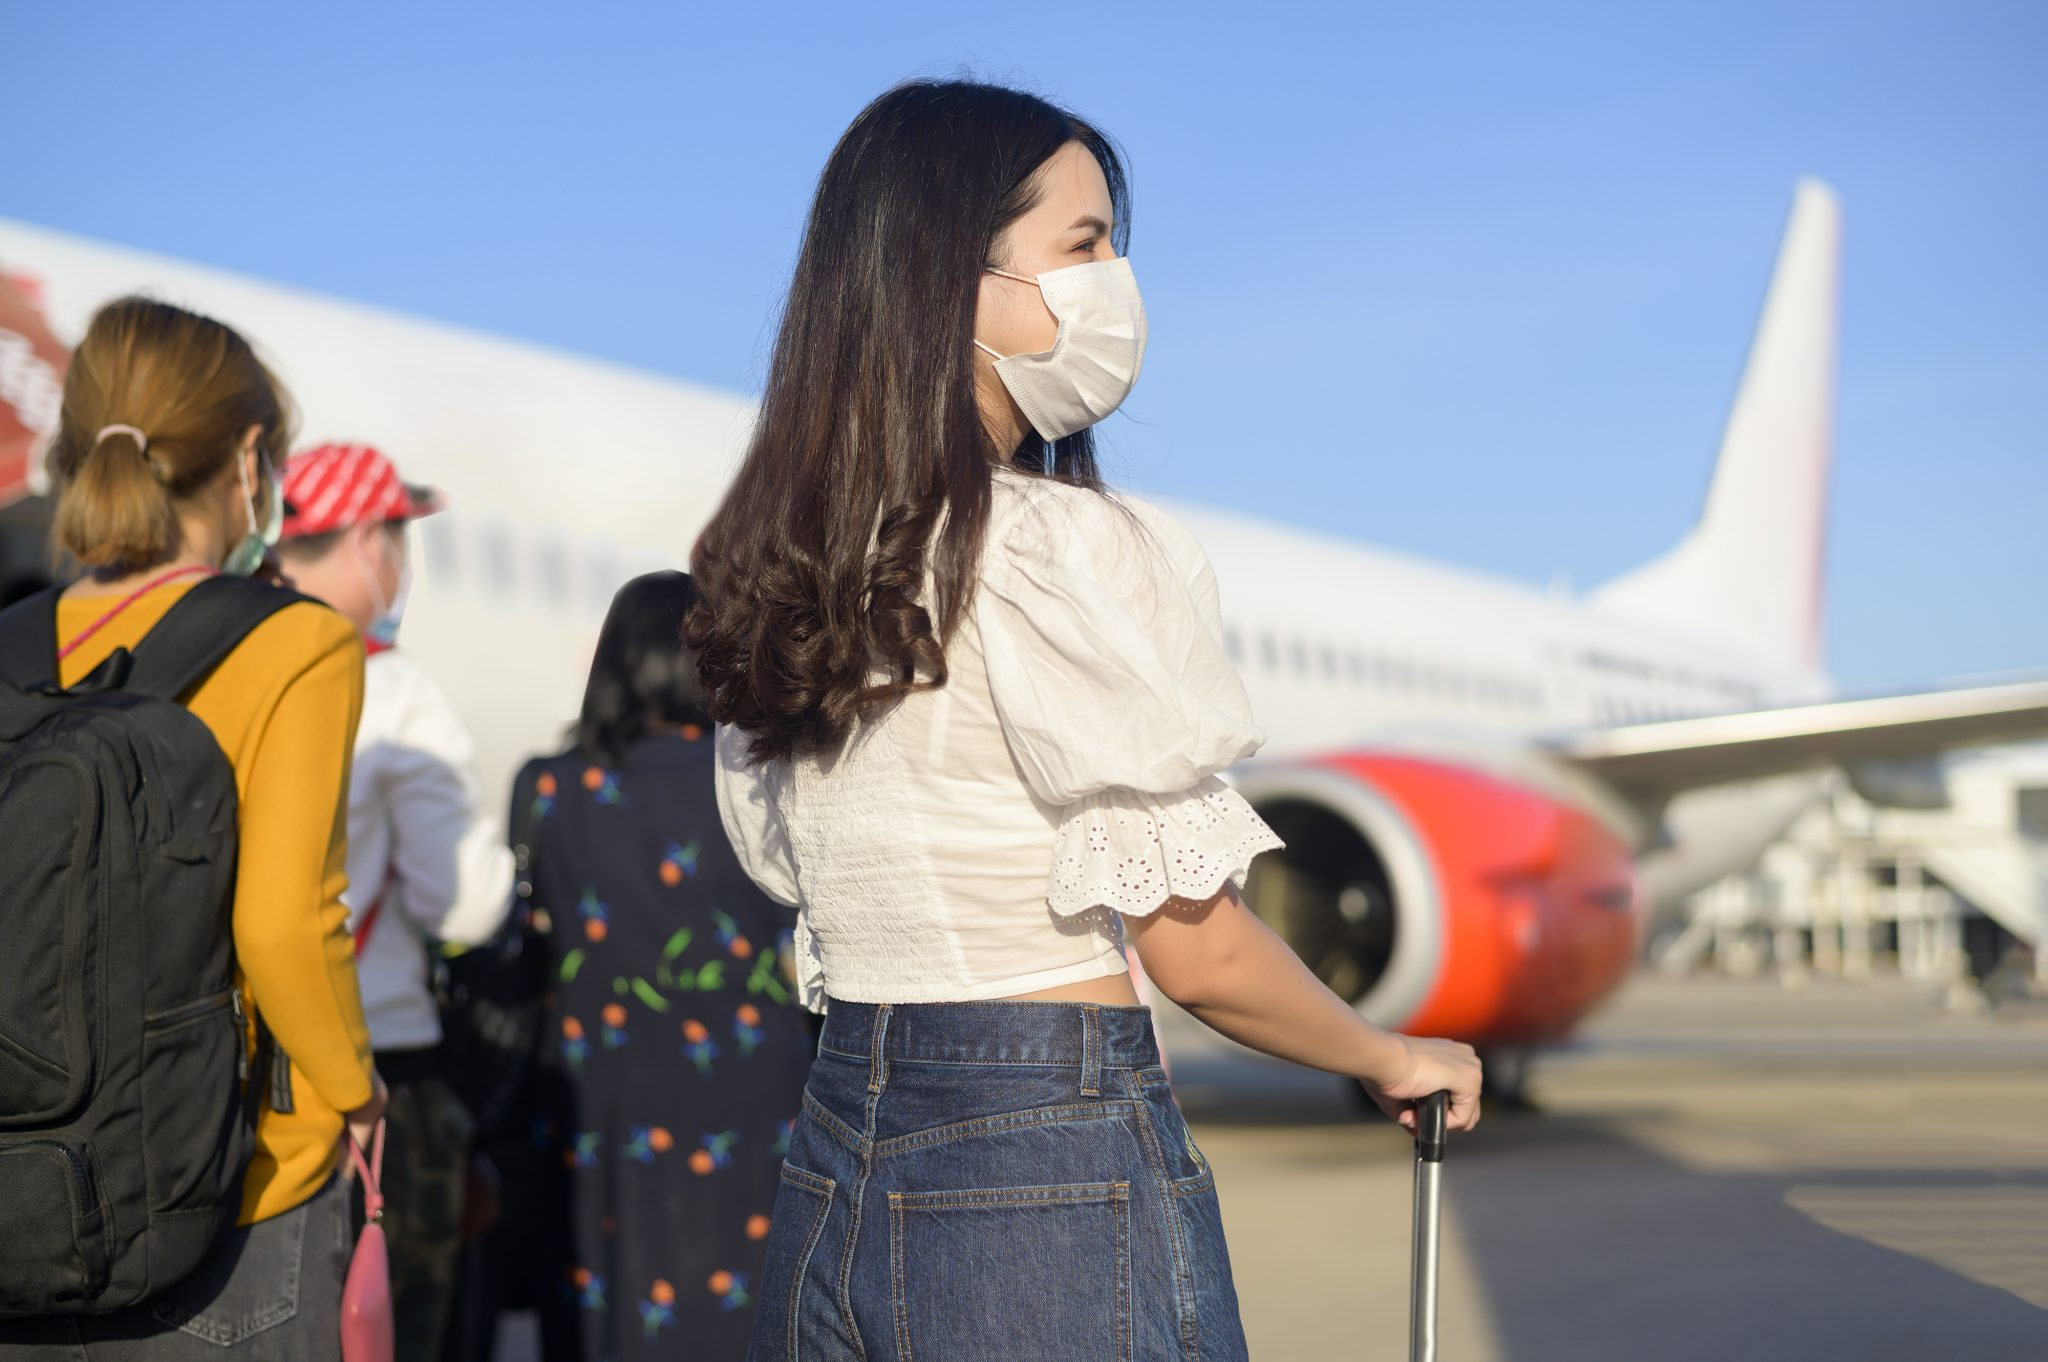 A young woman traveler wearing protective mask getting in airplane and ready to take off, travel under Covid-19 pandemic, safety travels, social distancing protocol, New normal travel concept